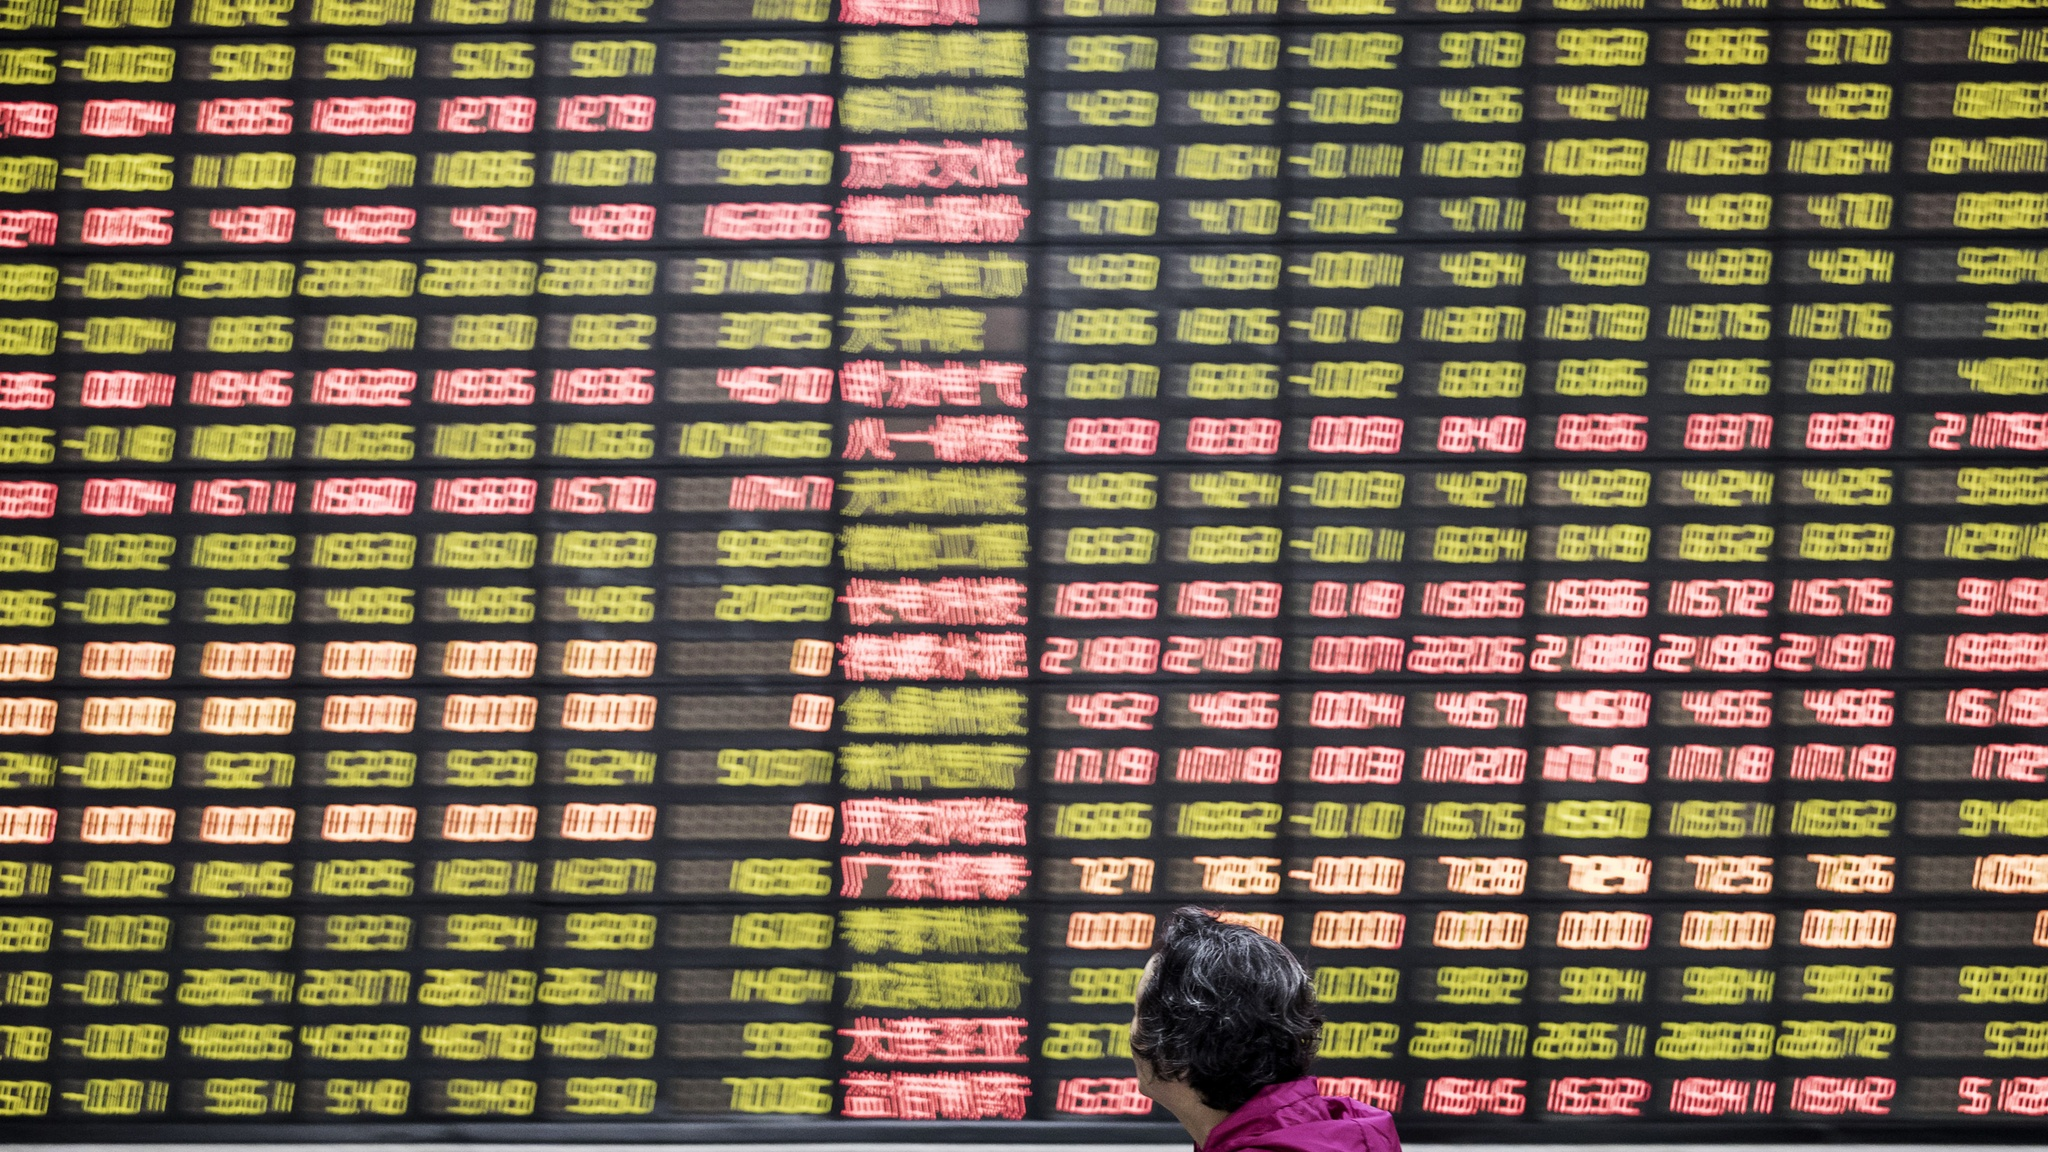 Asia-Pacific stocks edge higher on US-China trade deal hopes